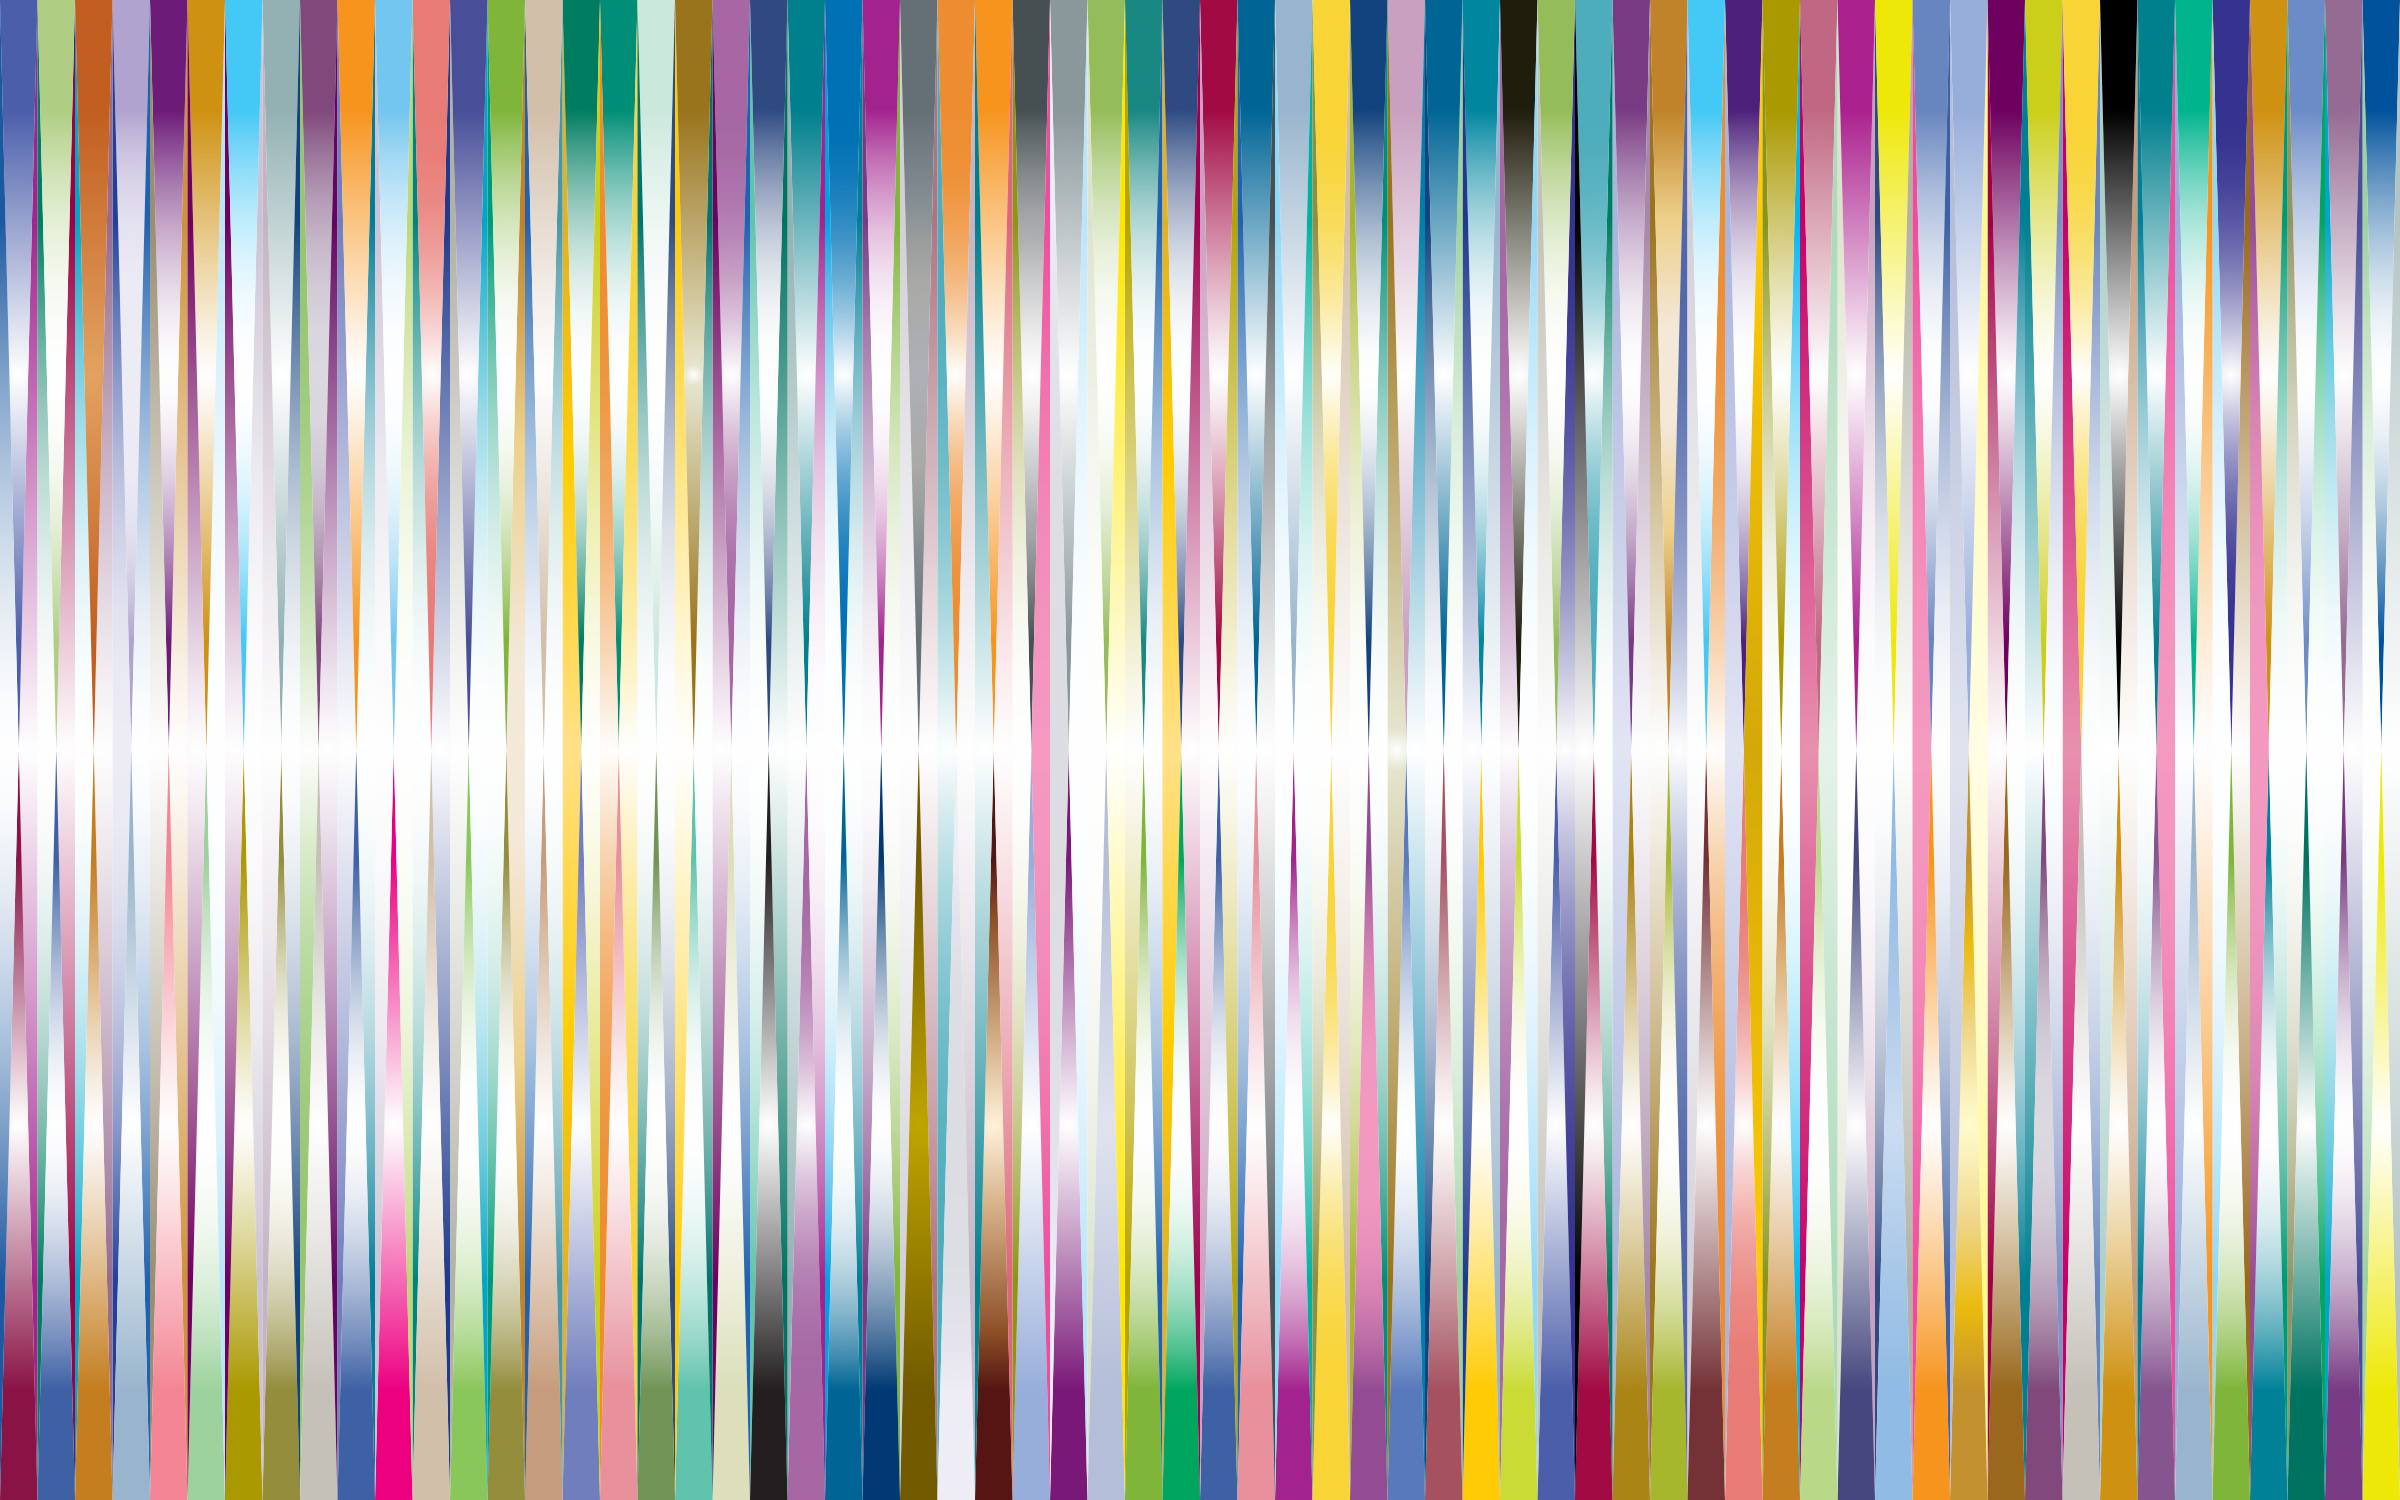 Stylized Striped Background 3 by GDJ